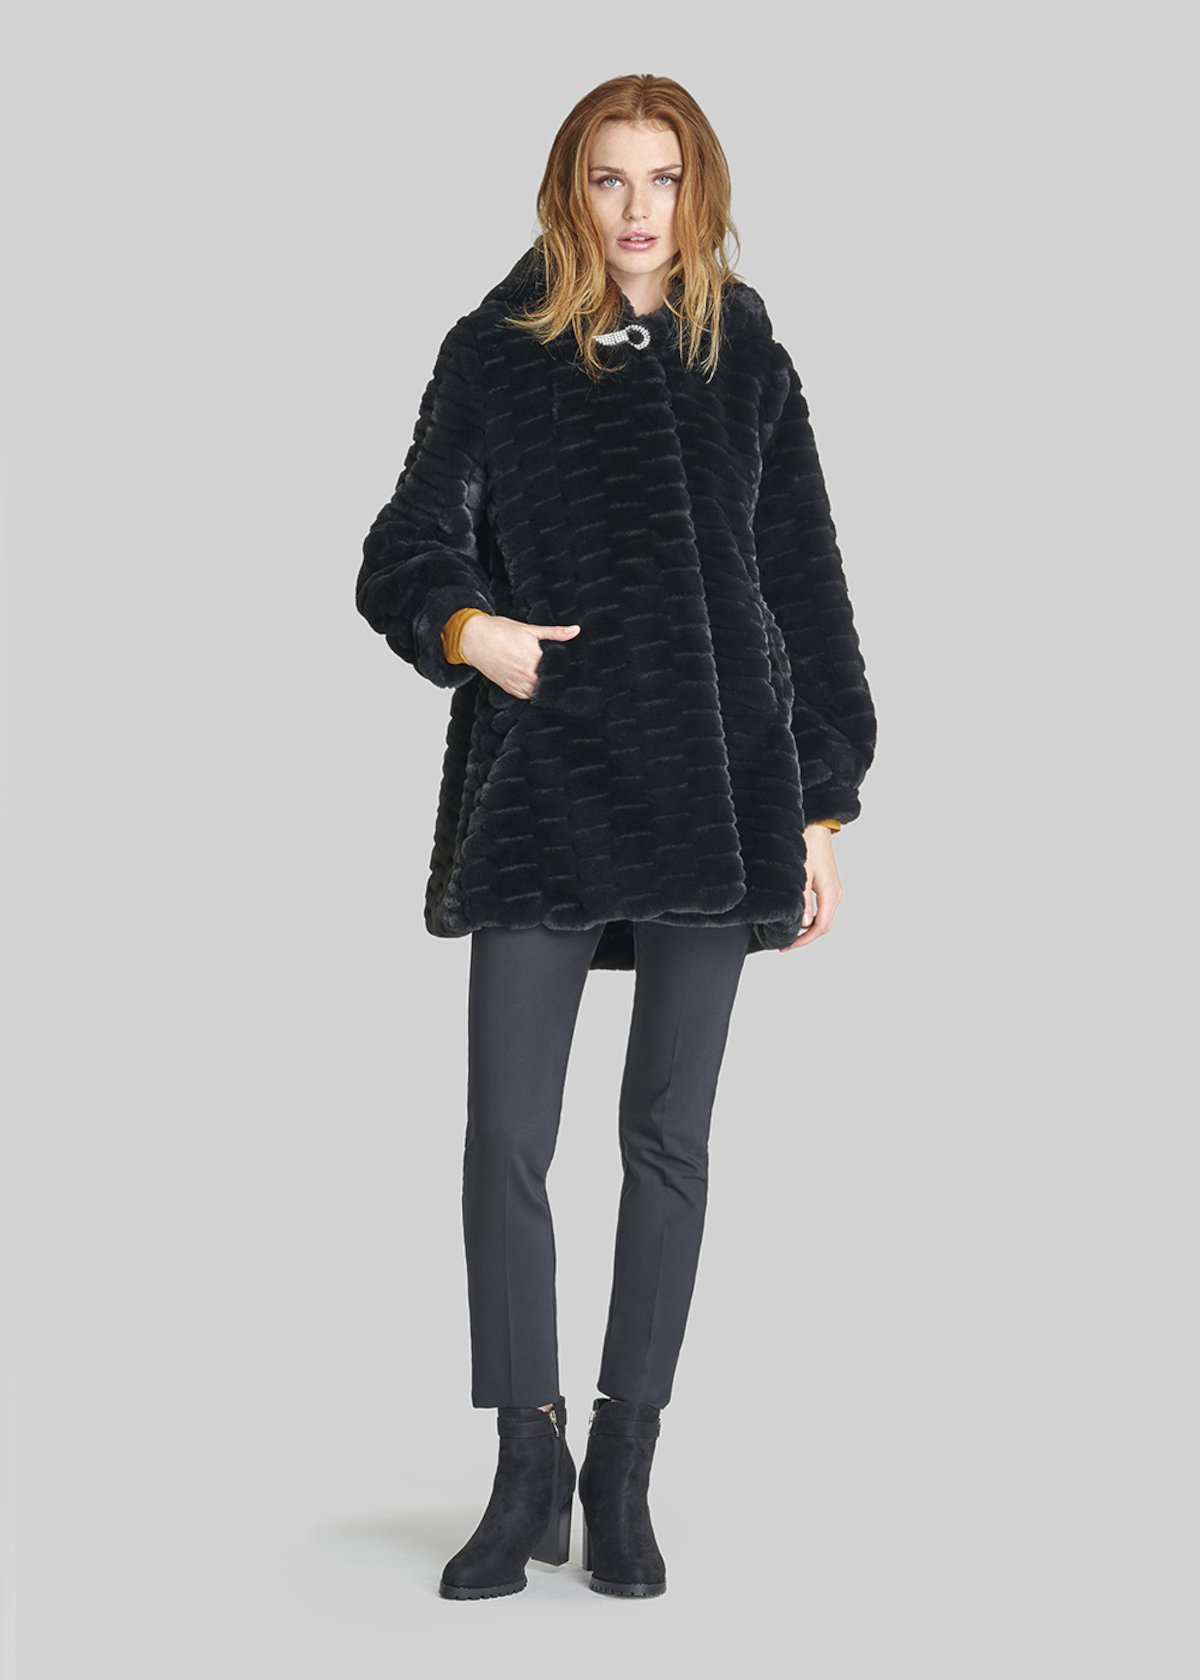 Cappotto Charles in ecopelliccia con cappuccio e gancio in strass - Black - Donna - Immagine categoria